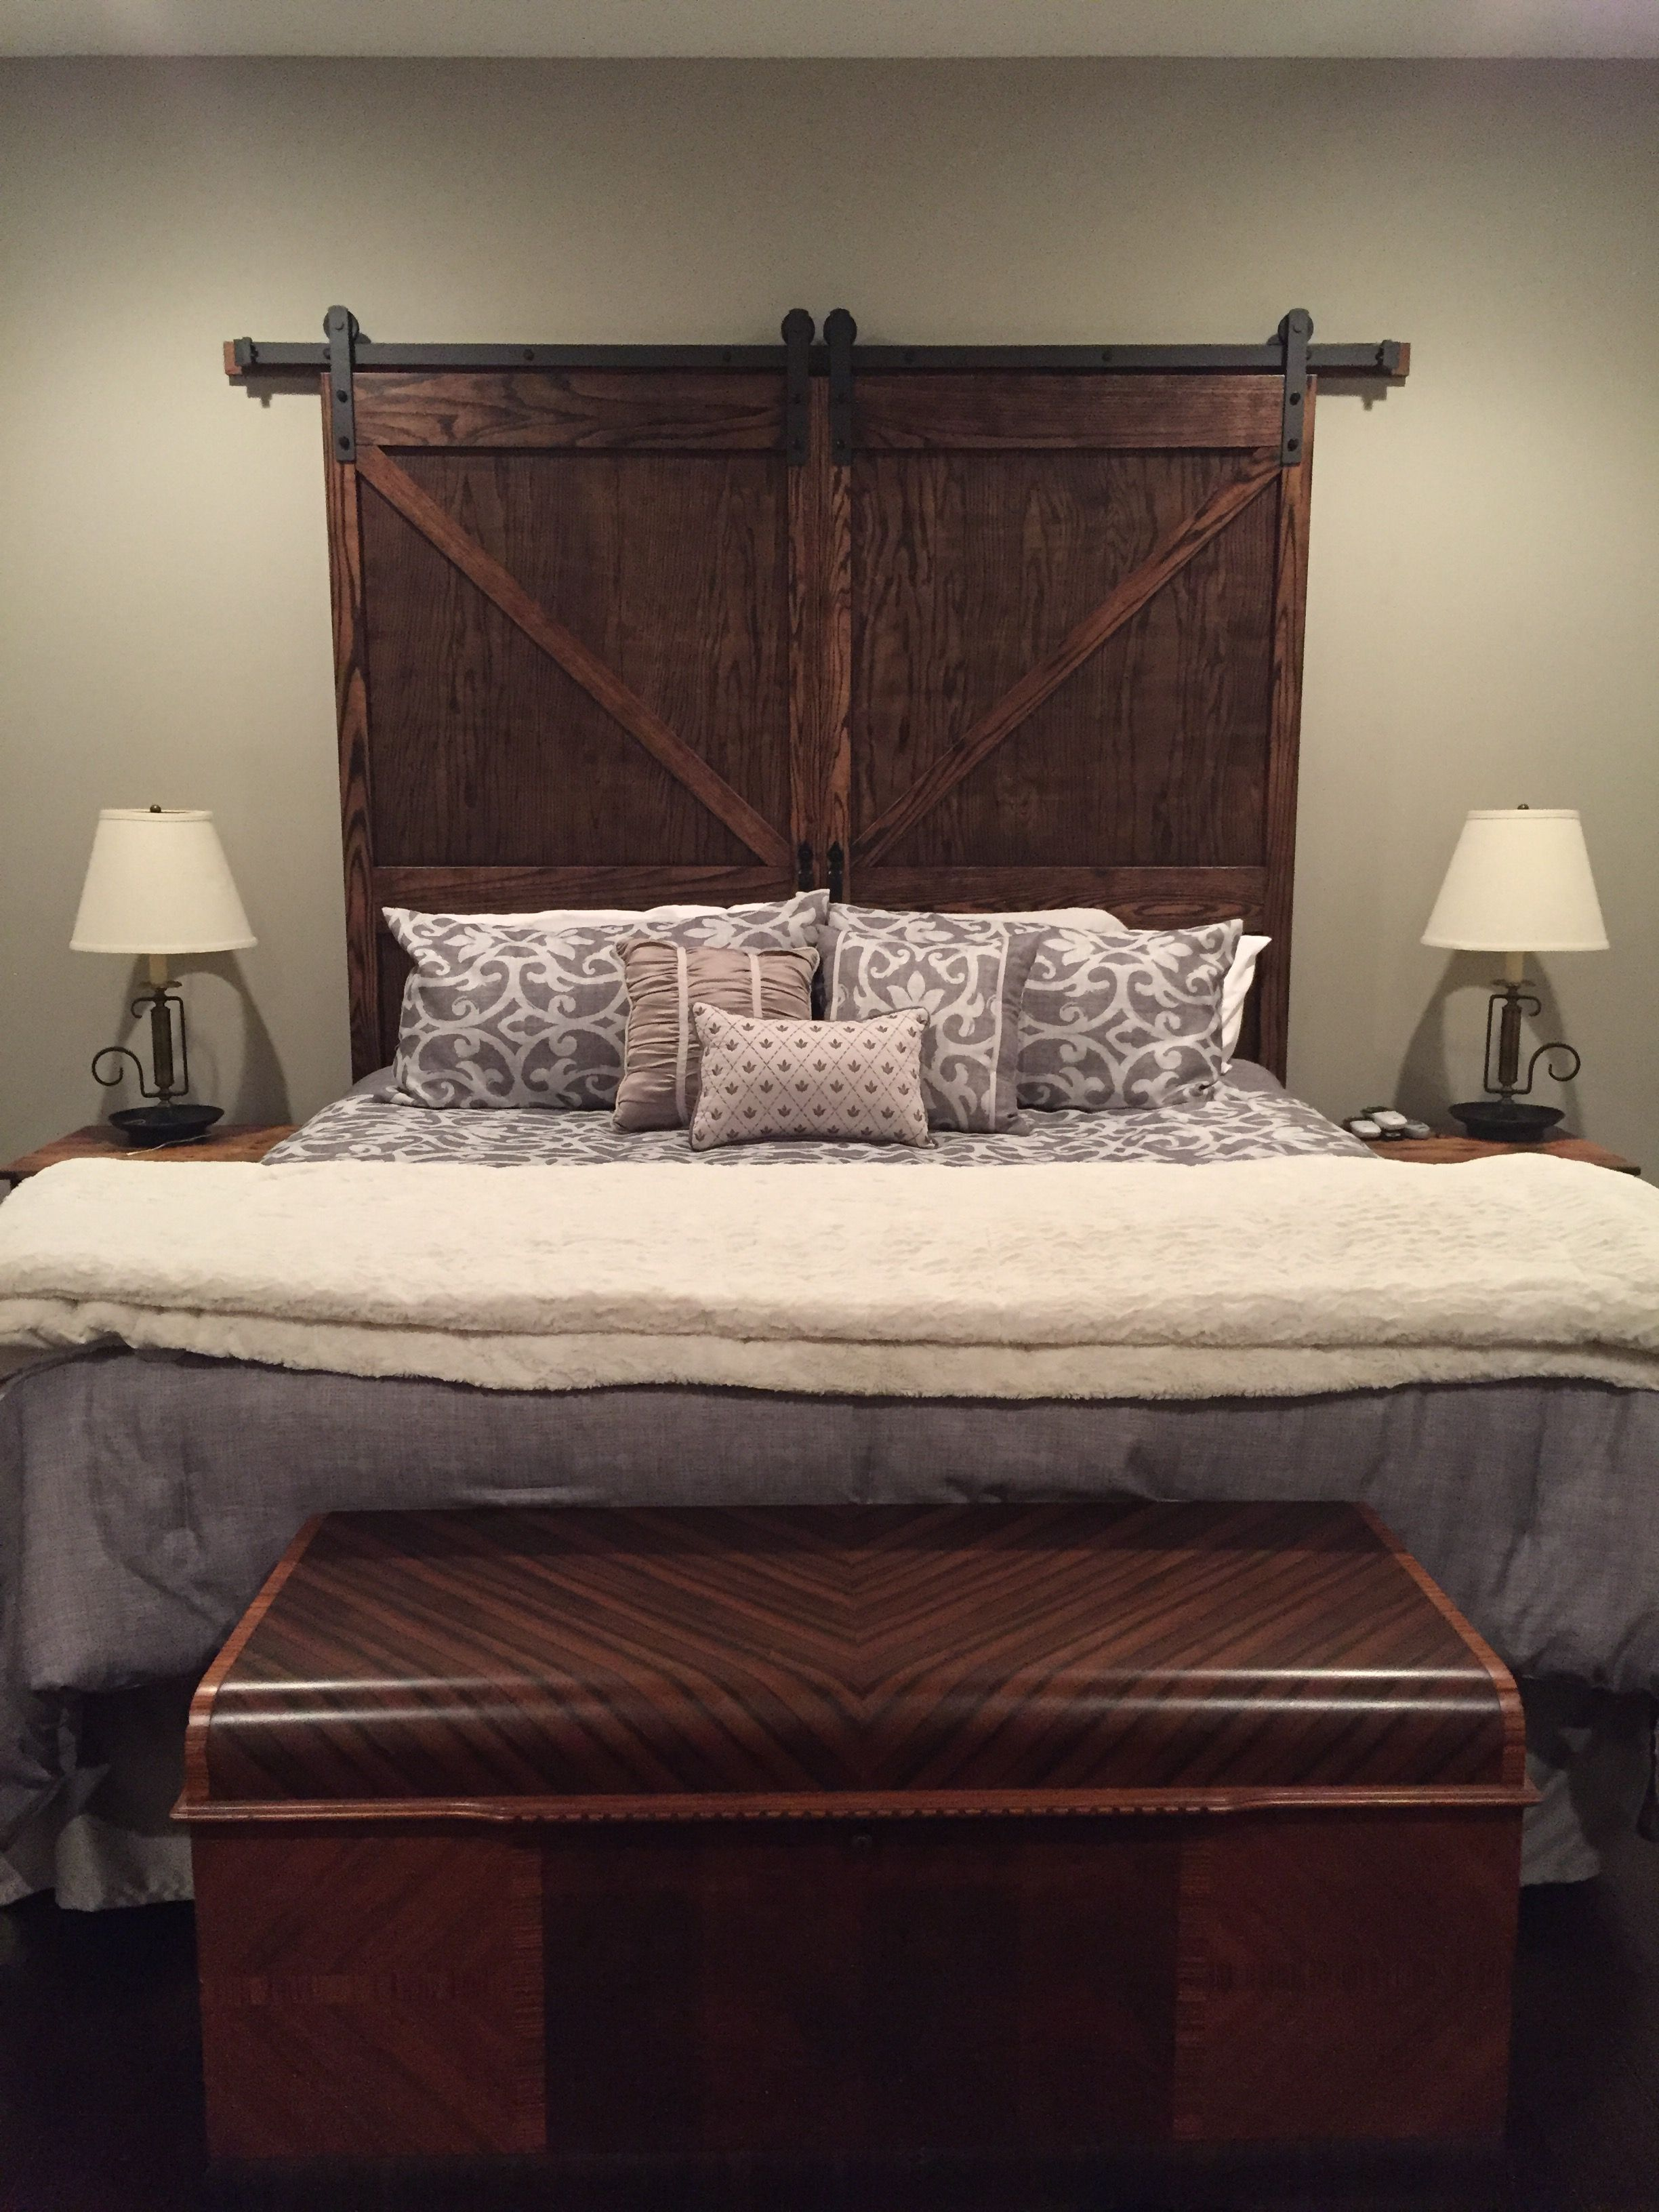 King Size Barn Door Headboard With Hardware Barndoor Headboard